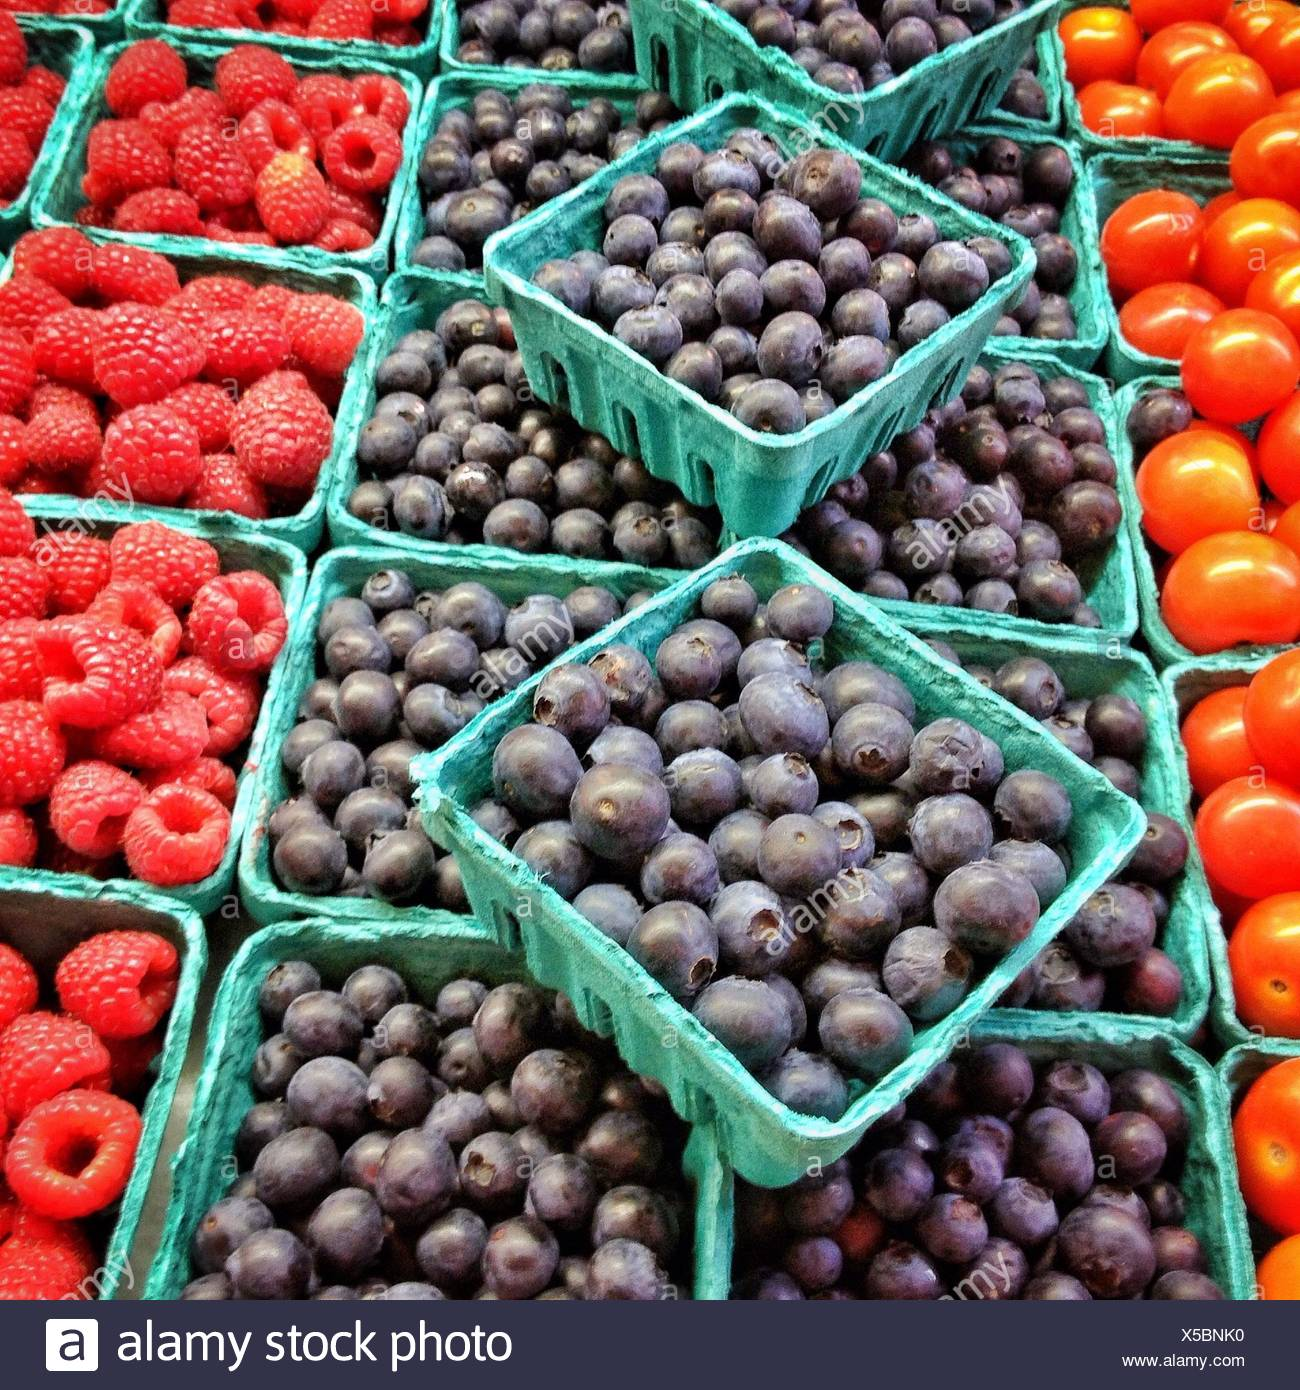 Fruit and vegetables in market - Stock Image